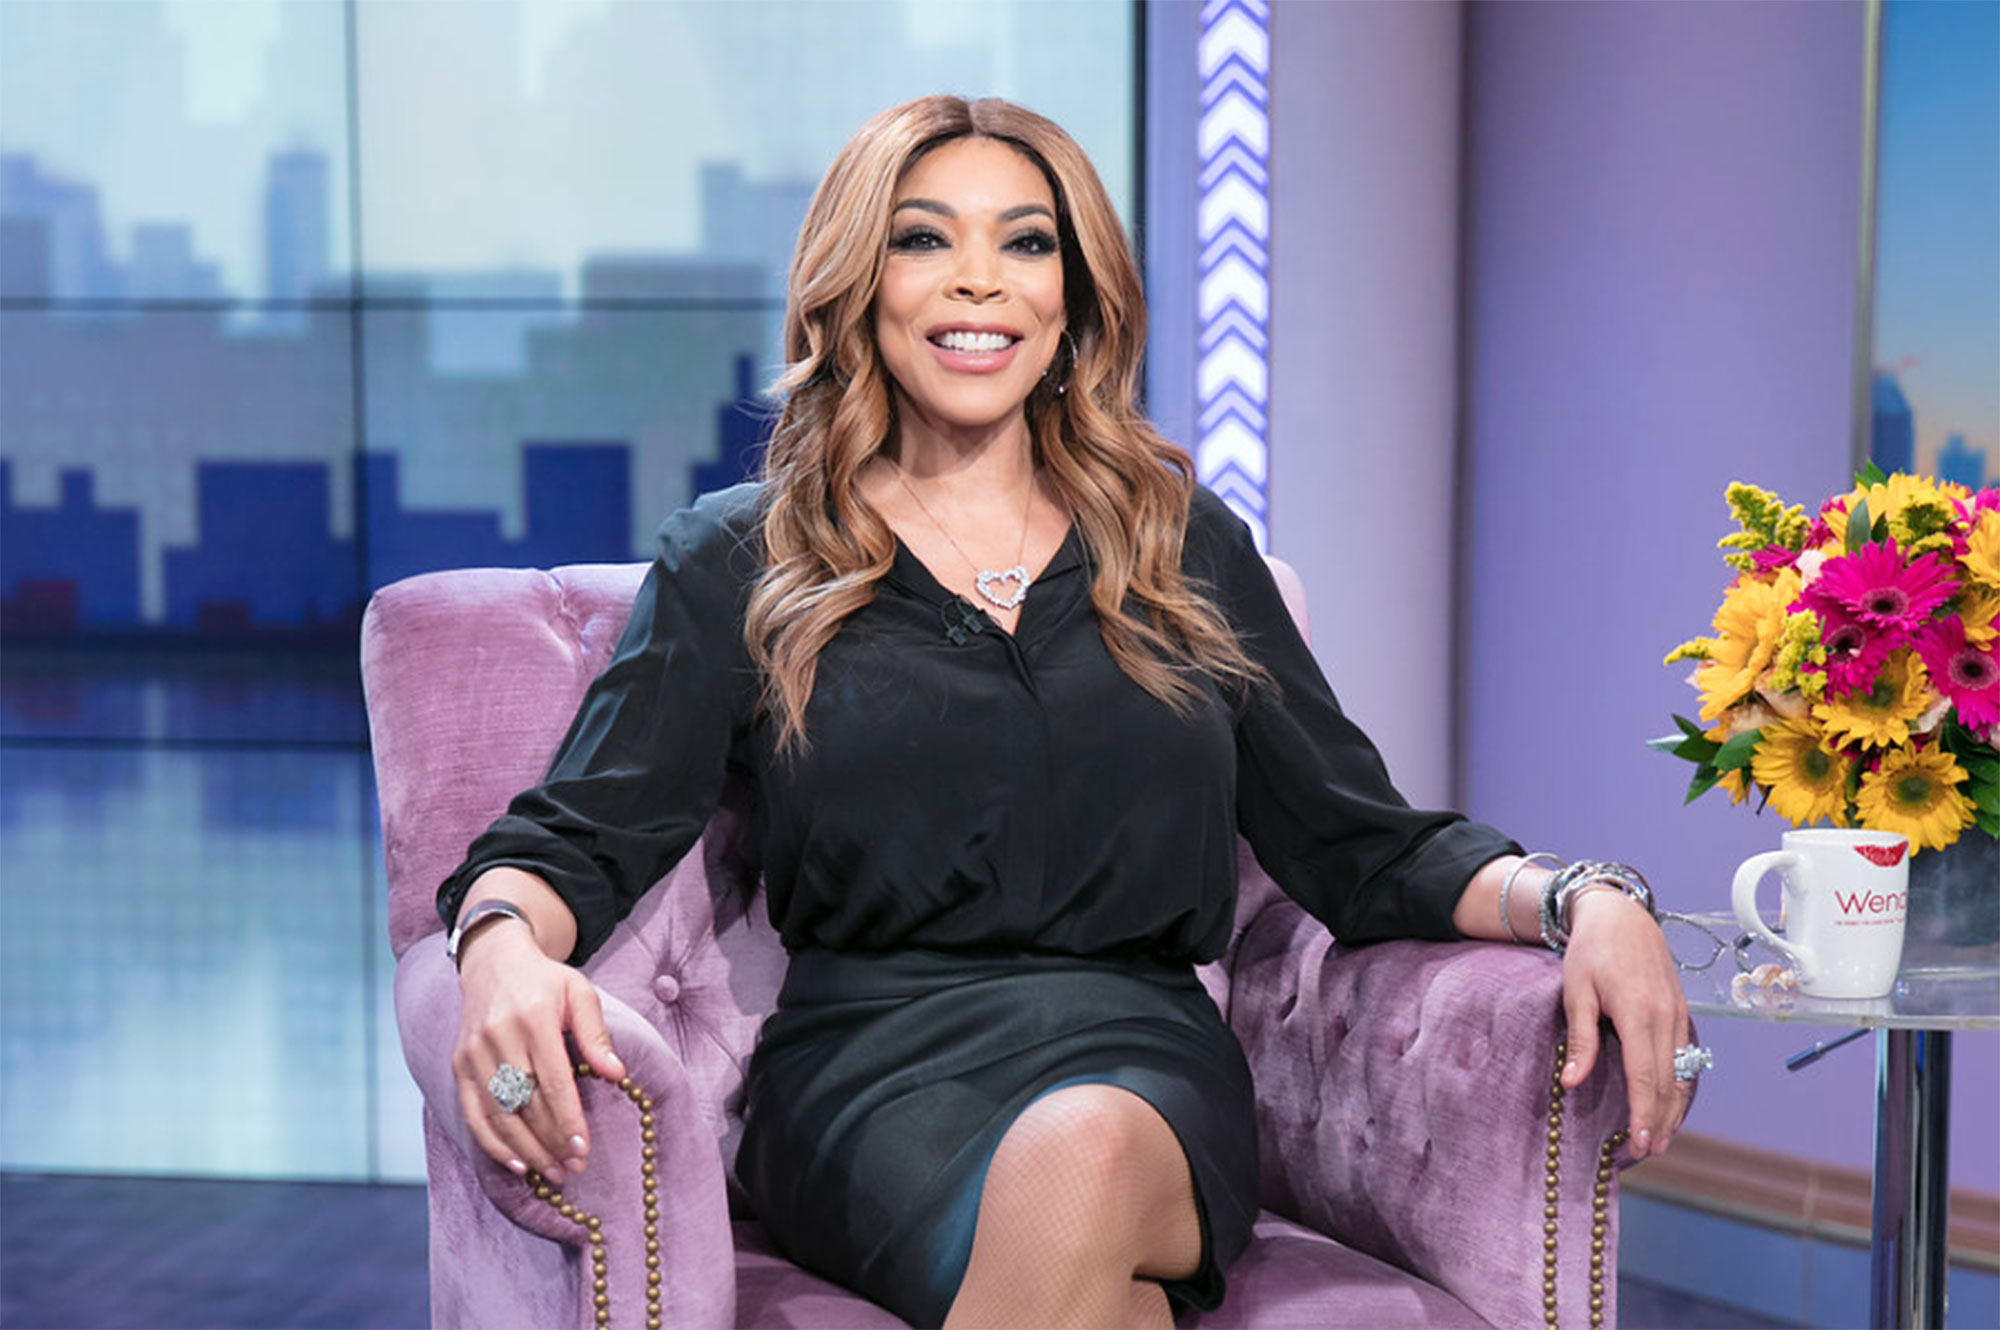 Wendy Williams Sets Return Date Following Medical Leave